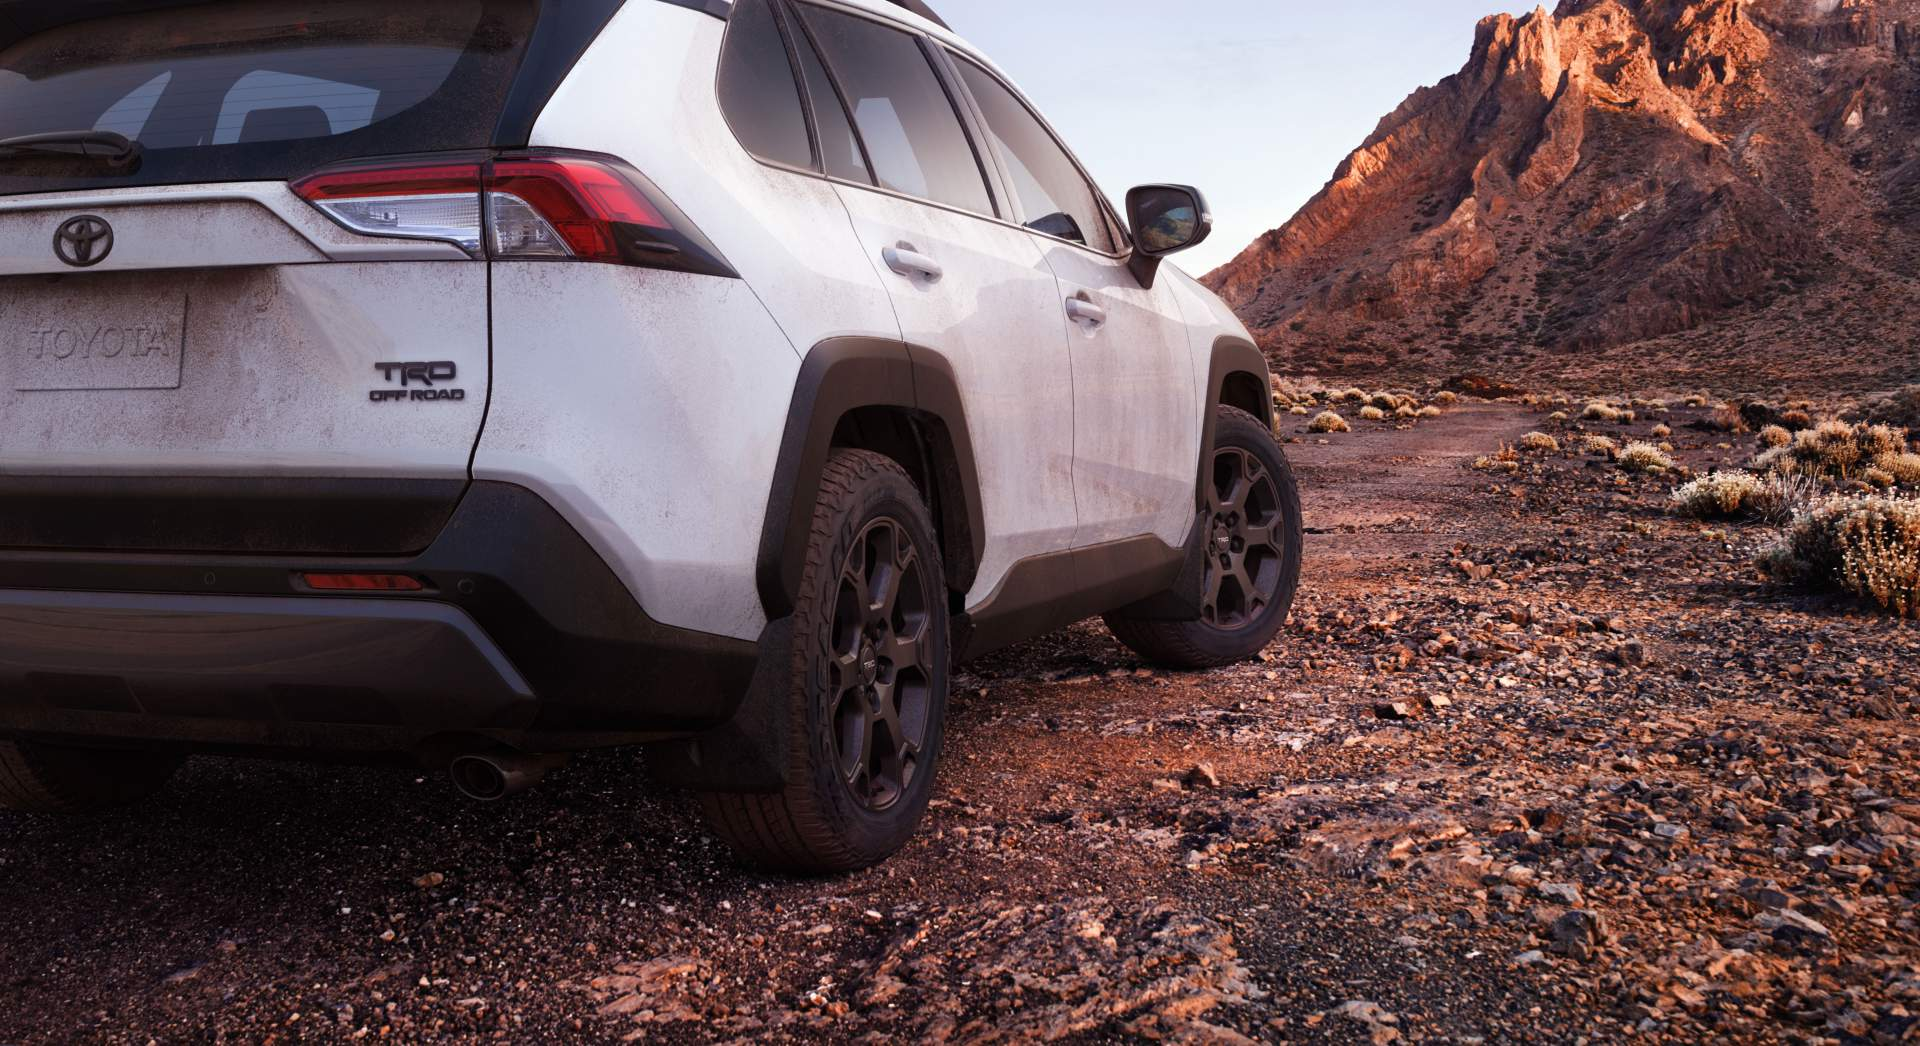 2020 toyota rav4 trd off-road revealed as next your jeep alternative